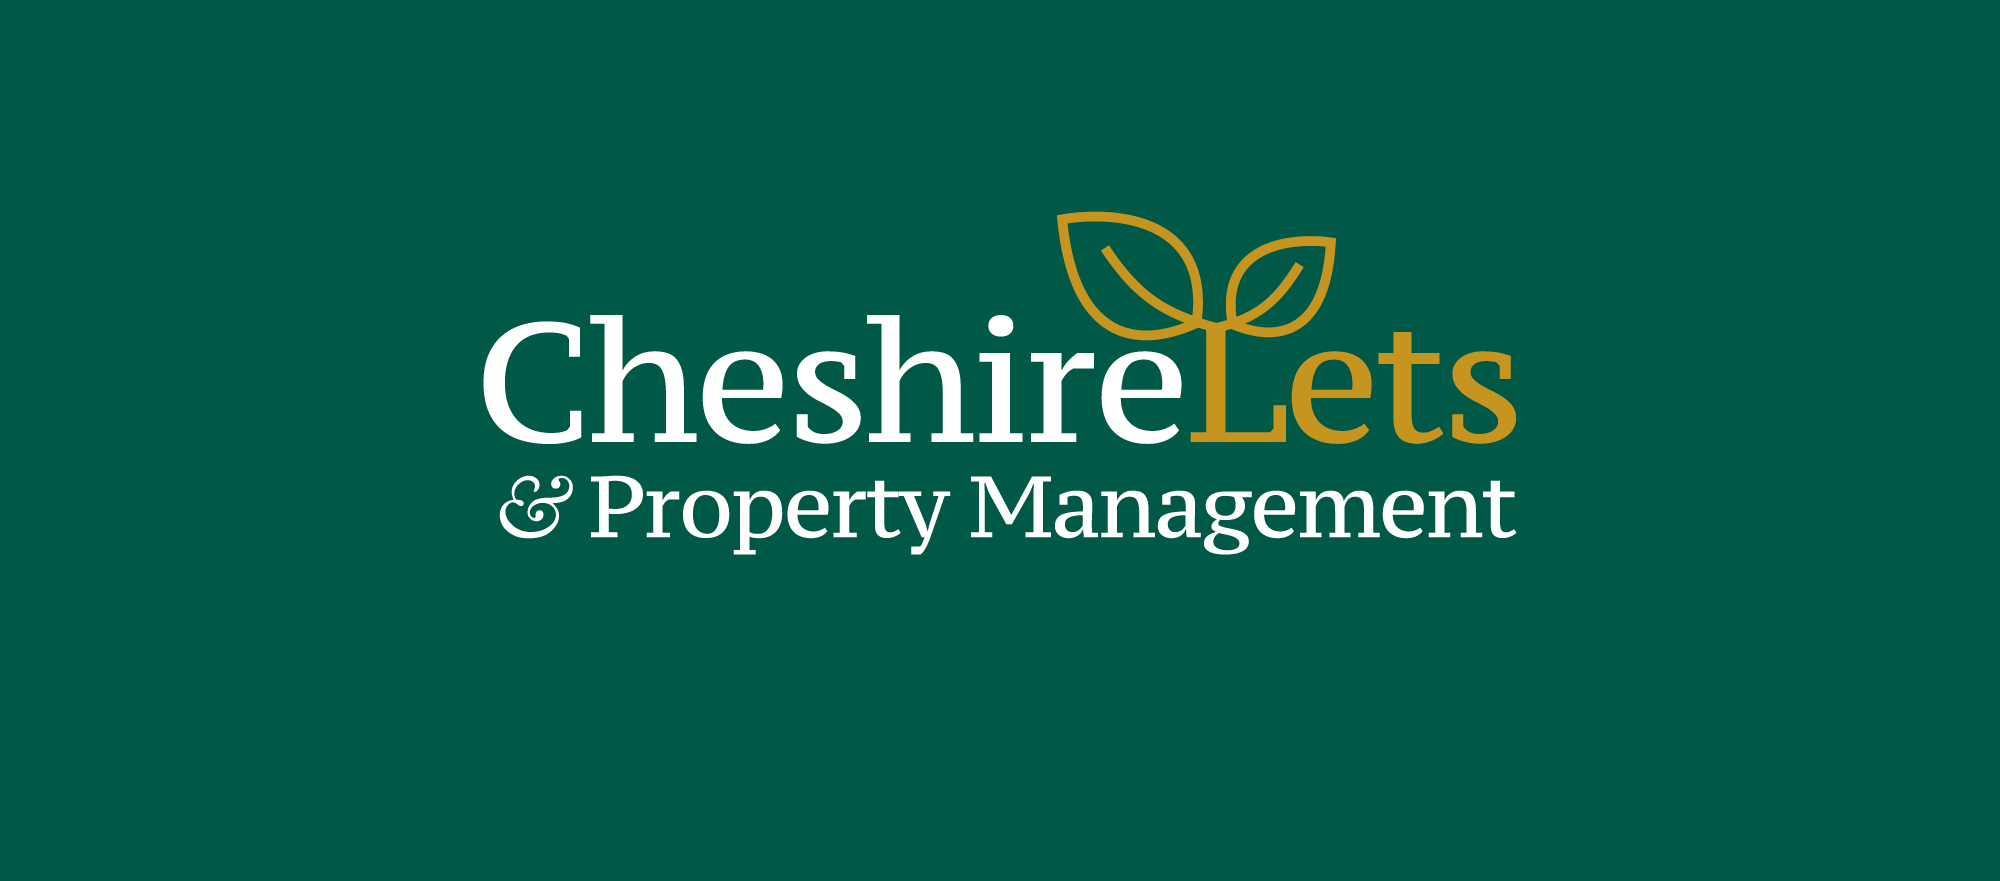 Cheshire-Lets-Logo-Green